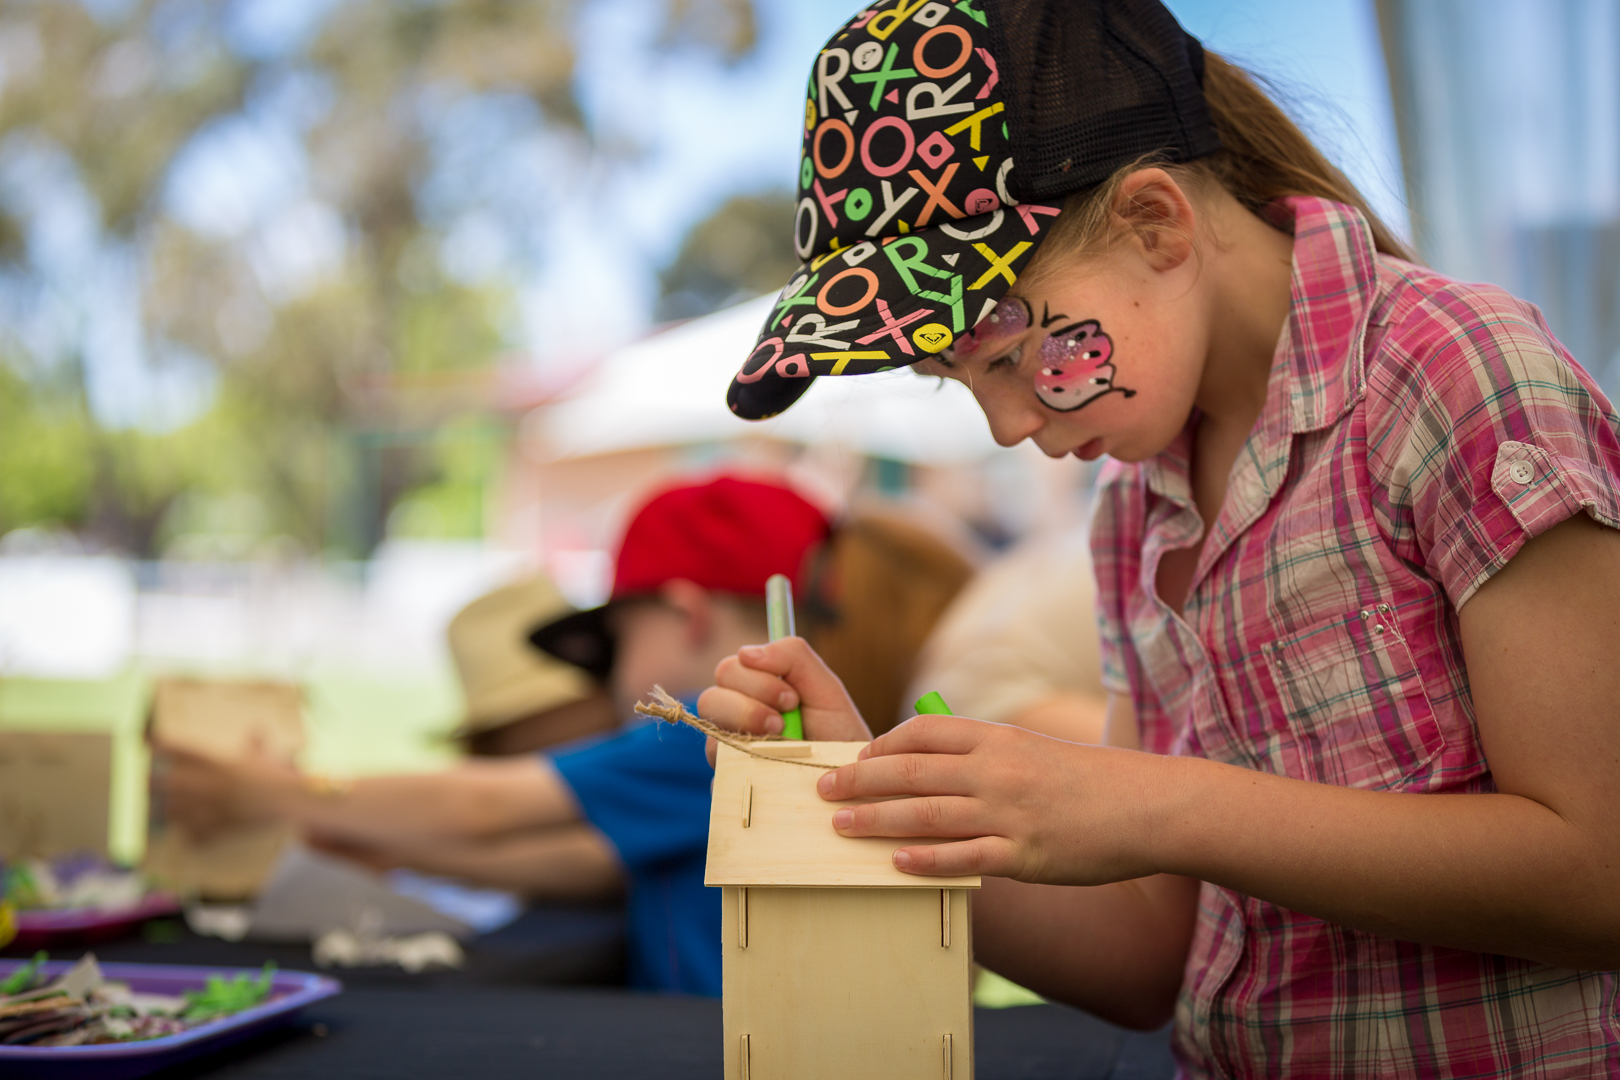 birdhouse-workshop-craft-kids-events-the-party-girl.jpg